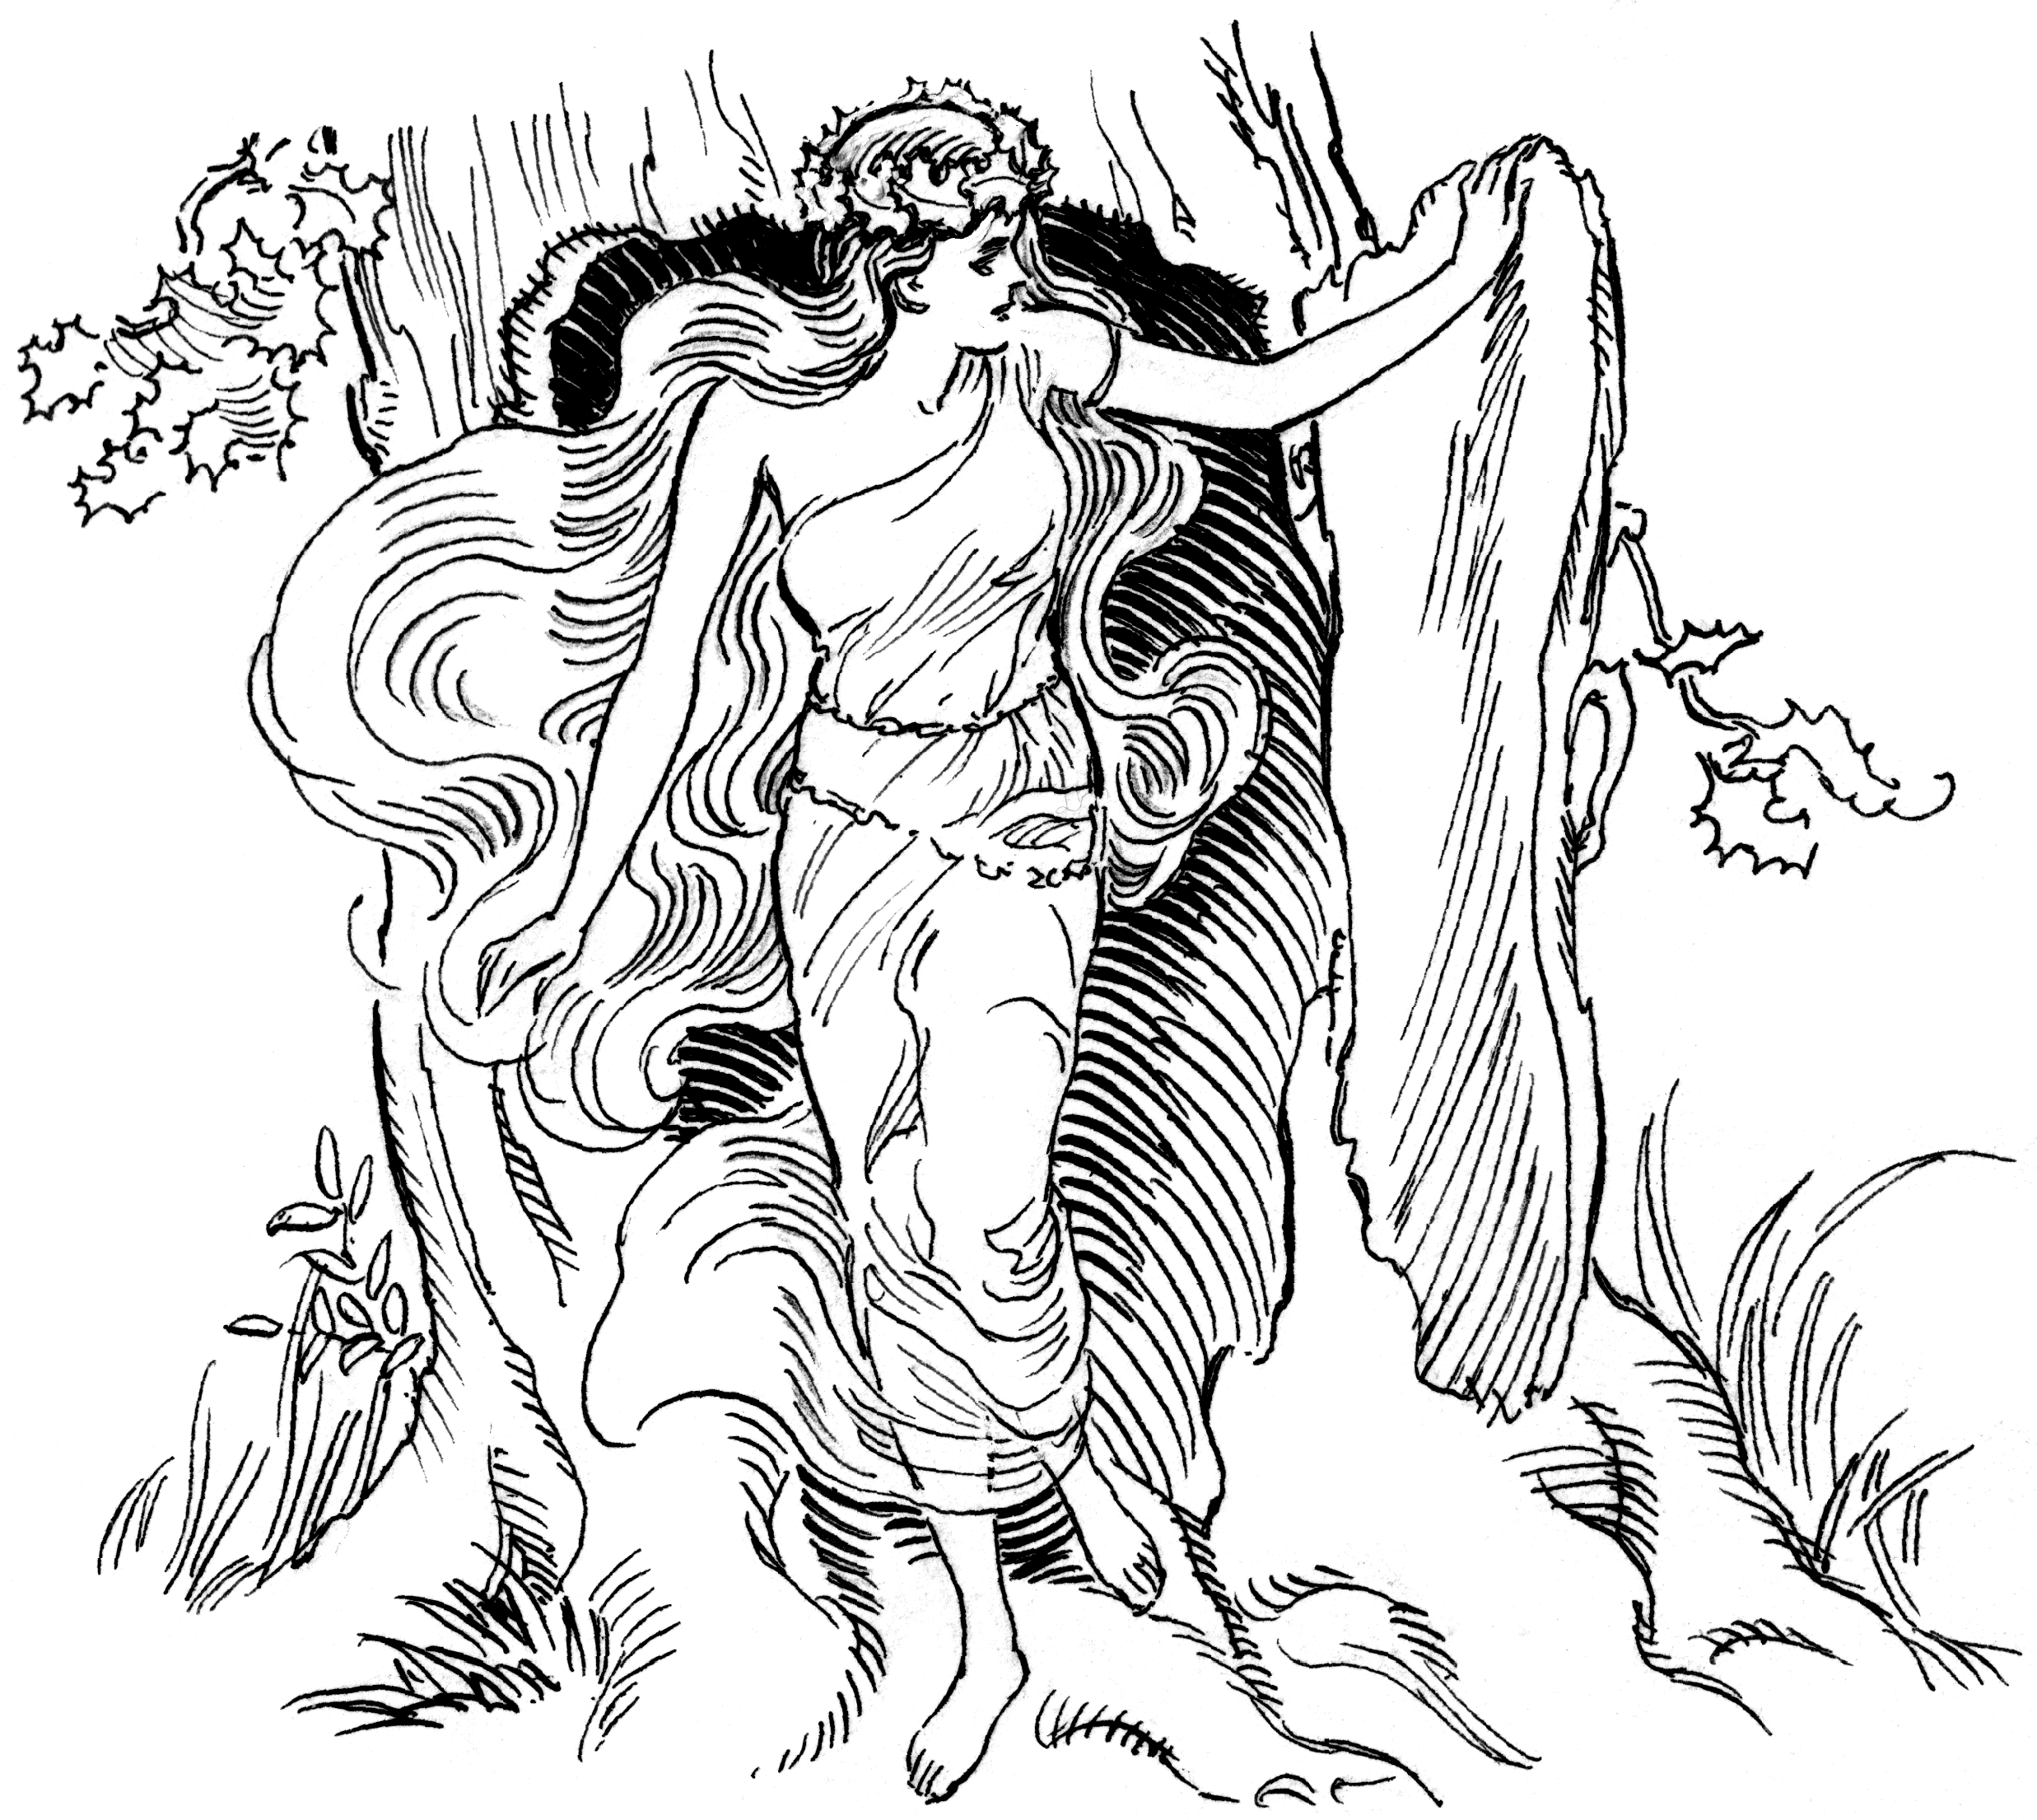 Dryad exploring outside of her tree, from Wiki Commons